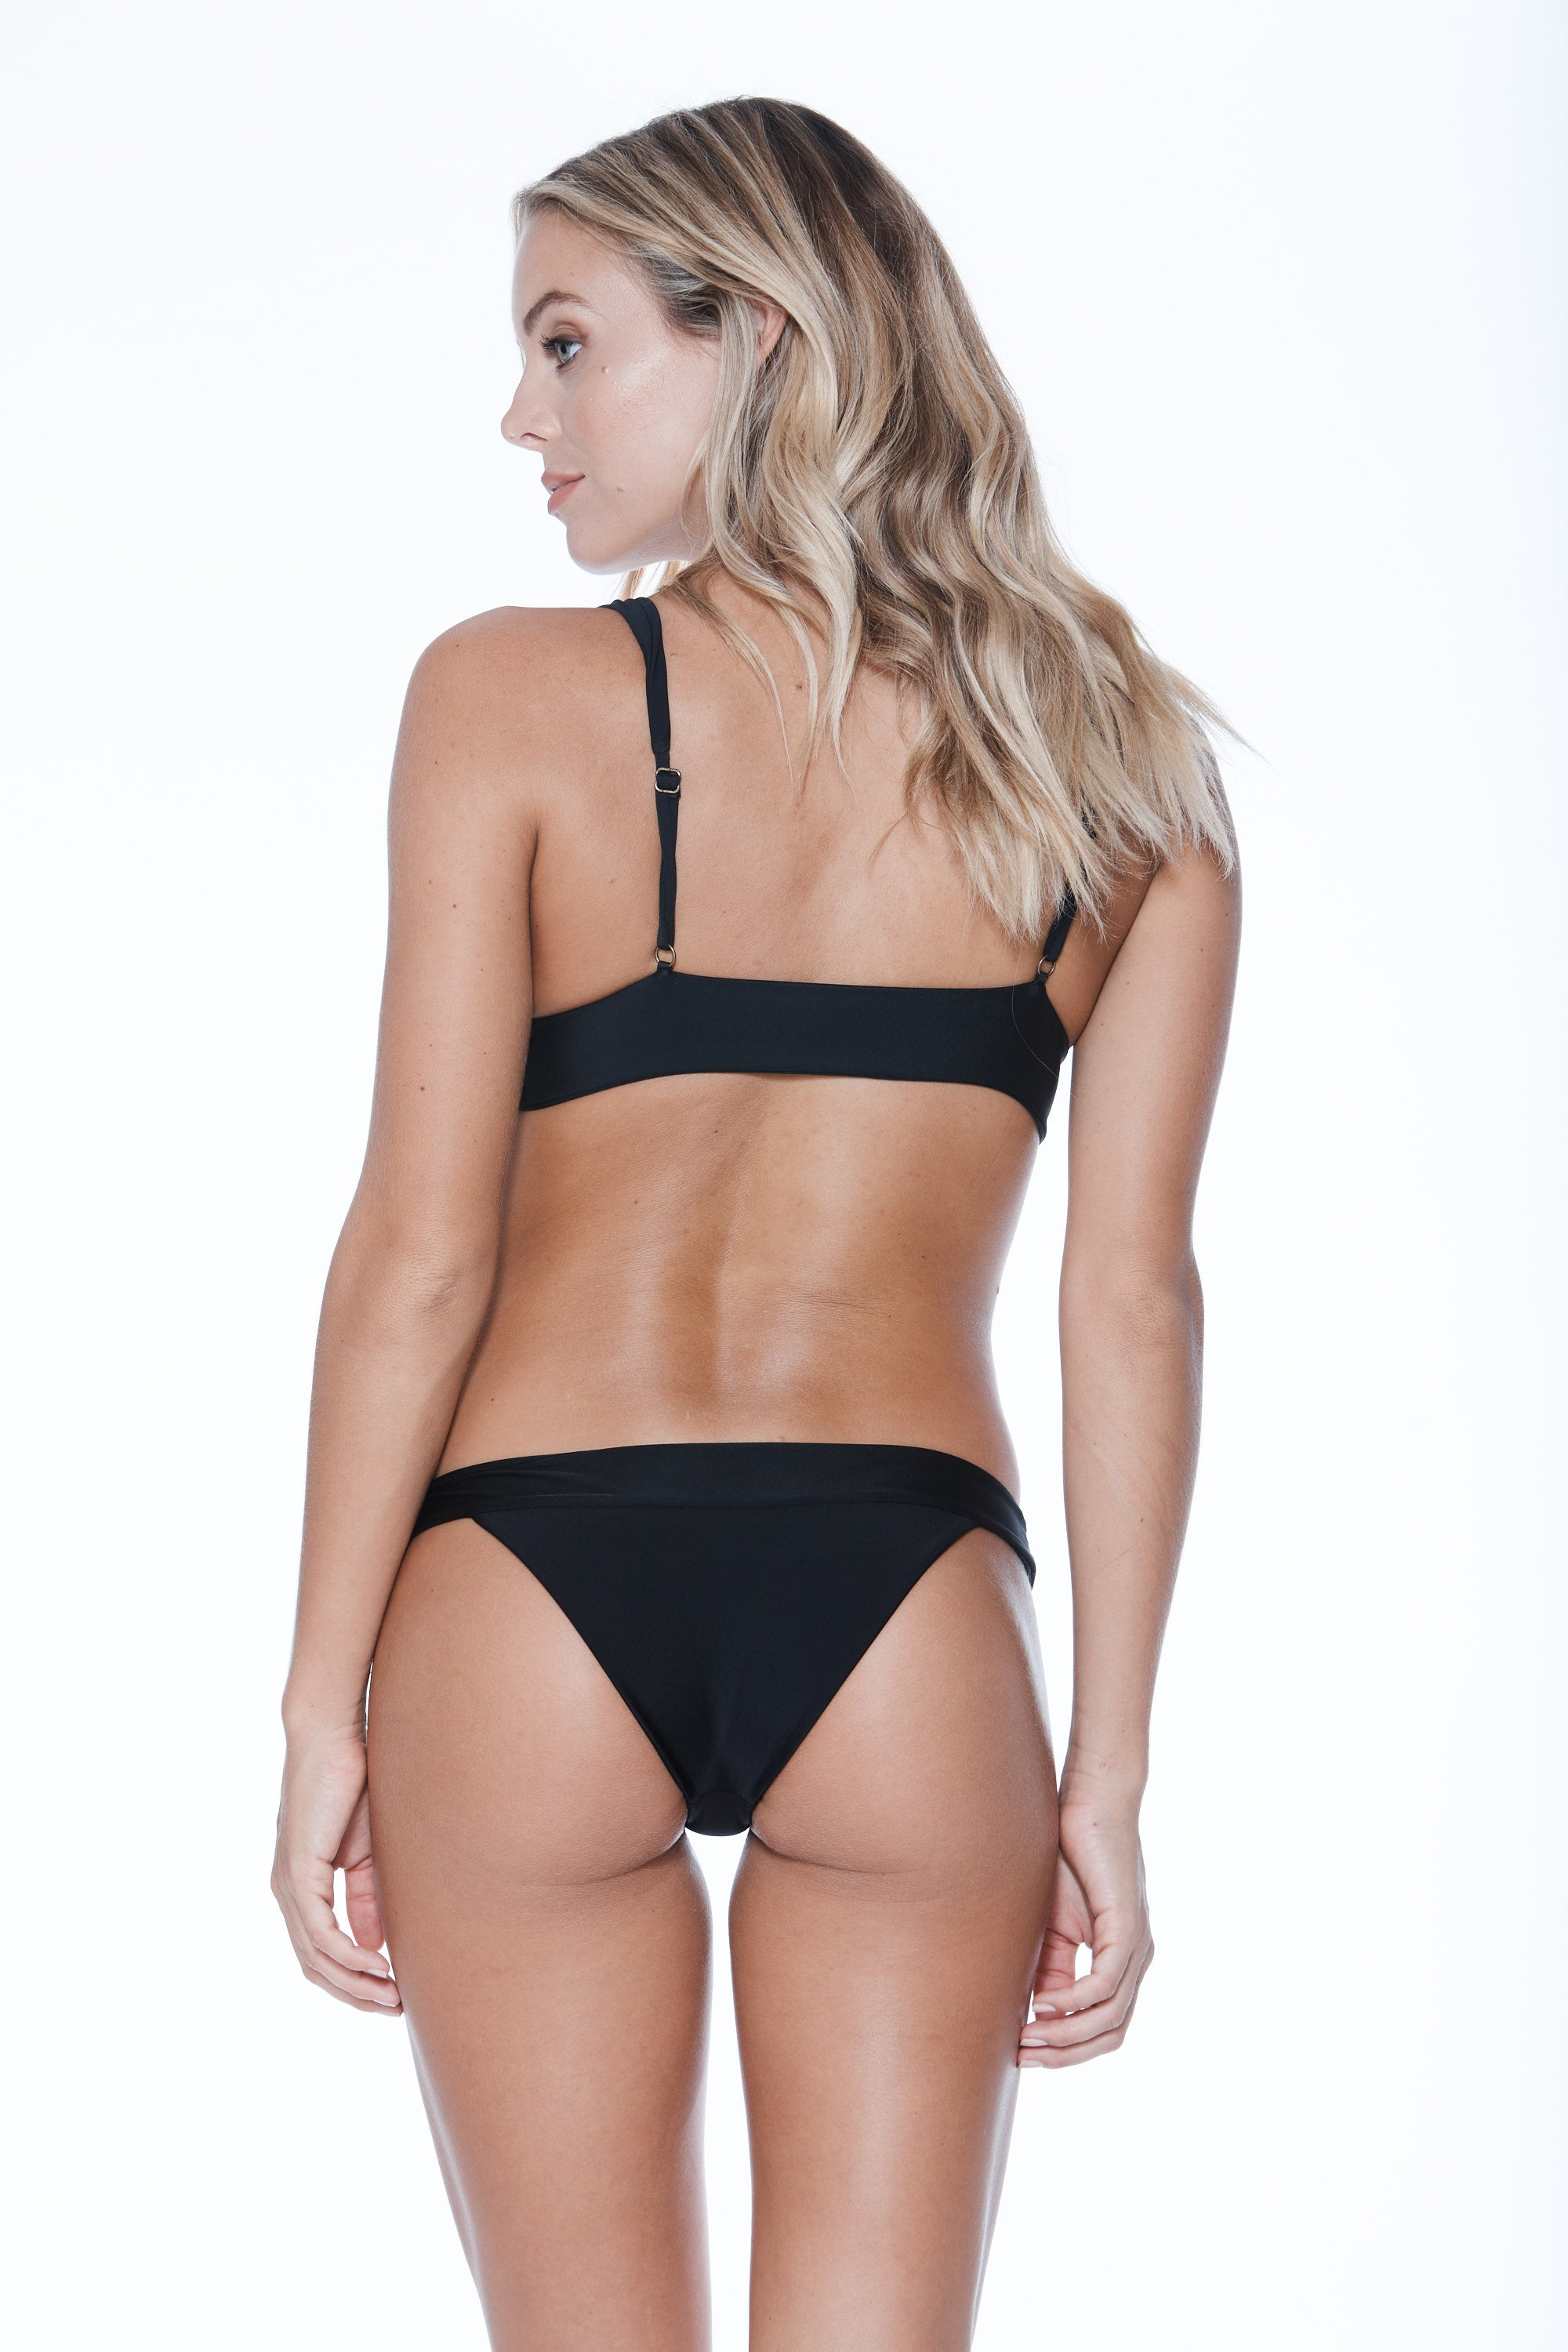 Ace Bottom No Holes - Black